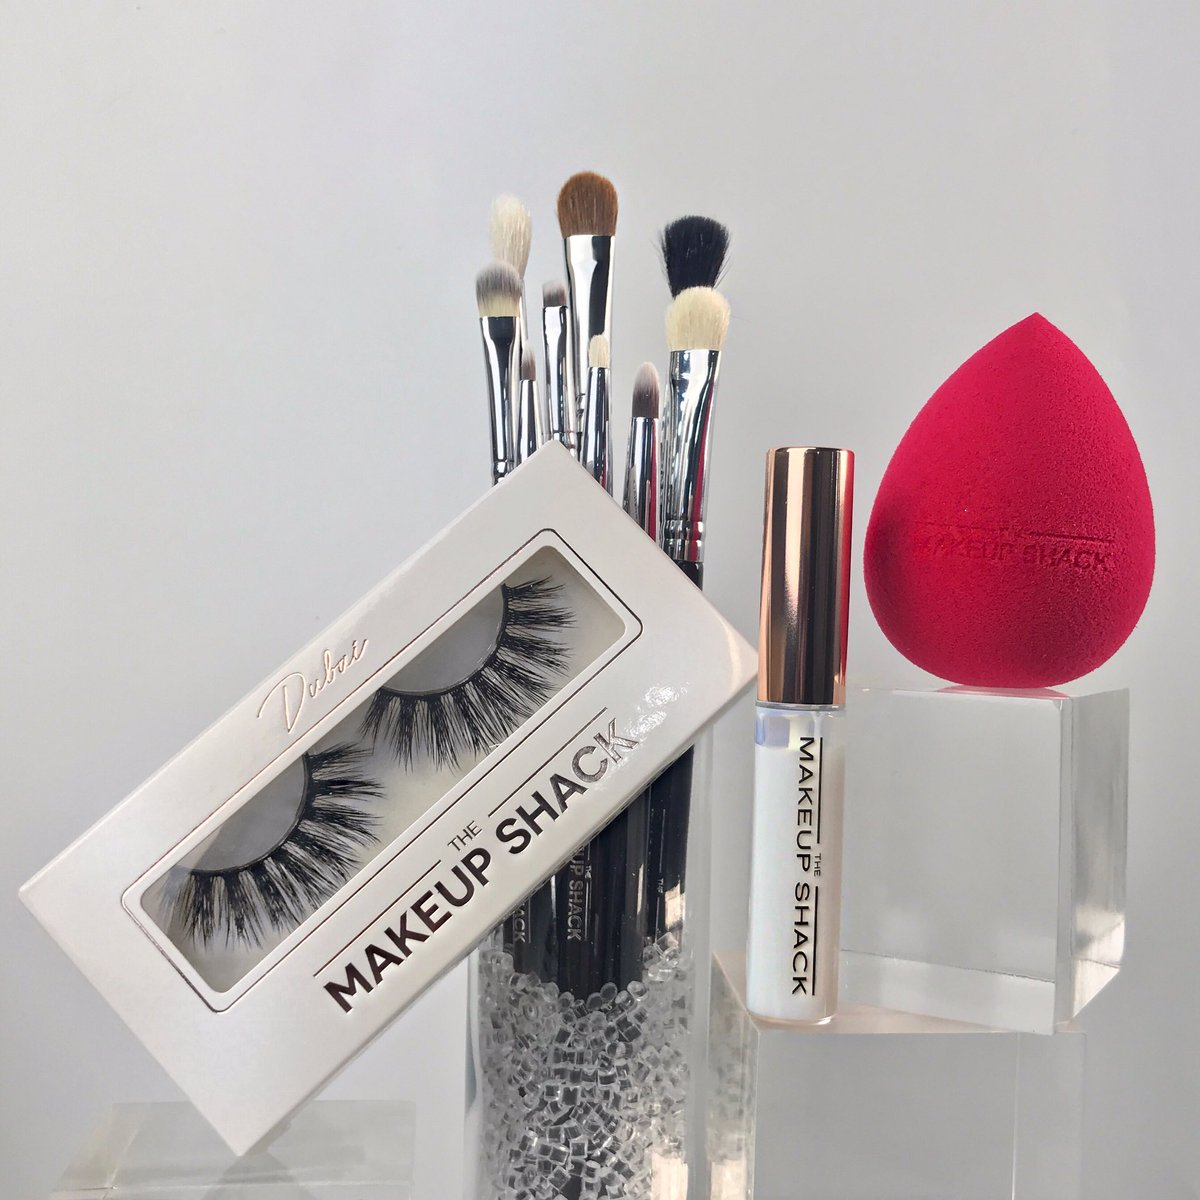 GIVEAWAY ALERT    Giveaway rules 1. Must be following @themakeupshack  2. Tag a bestie & Retweet this post TWO LUCKY WINNERS will receive our new Essential Brush Set, Beauty Sponge, Dubai lashes and Lash Glue  Winners will be announced tomorrow & Sunday! #Giveaway <br>http://pic.twitter.com/NerUx2fw5W